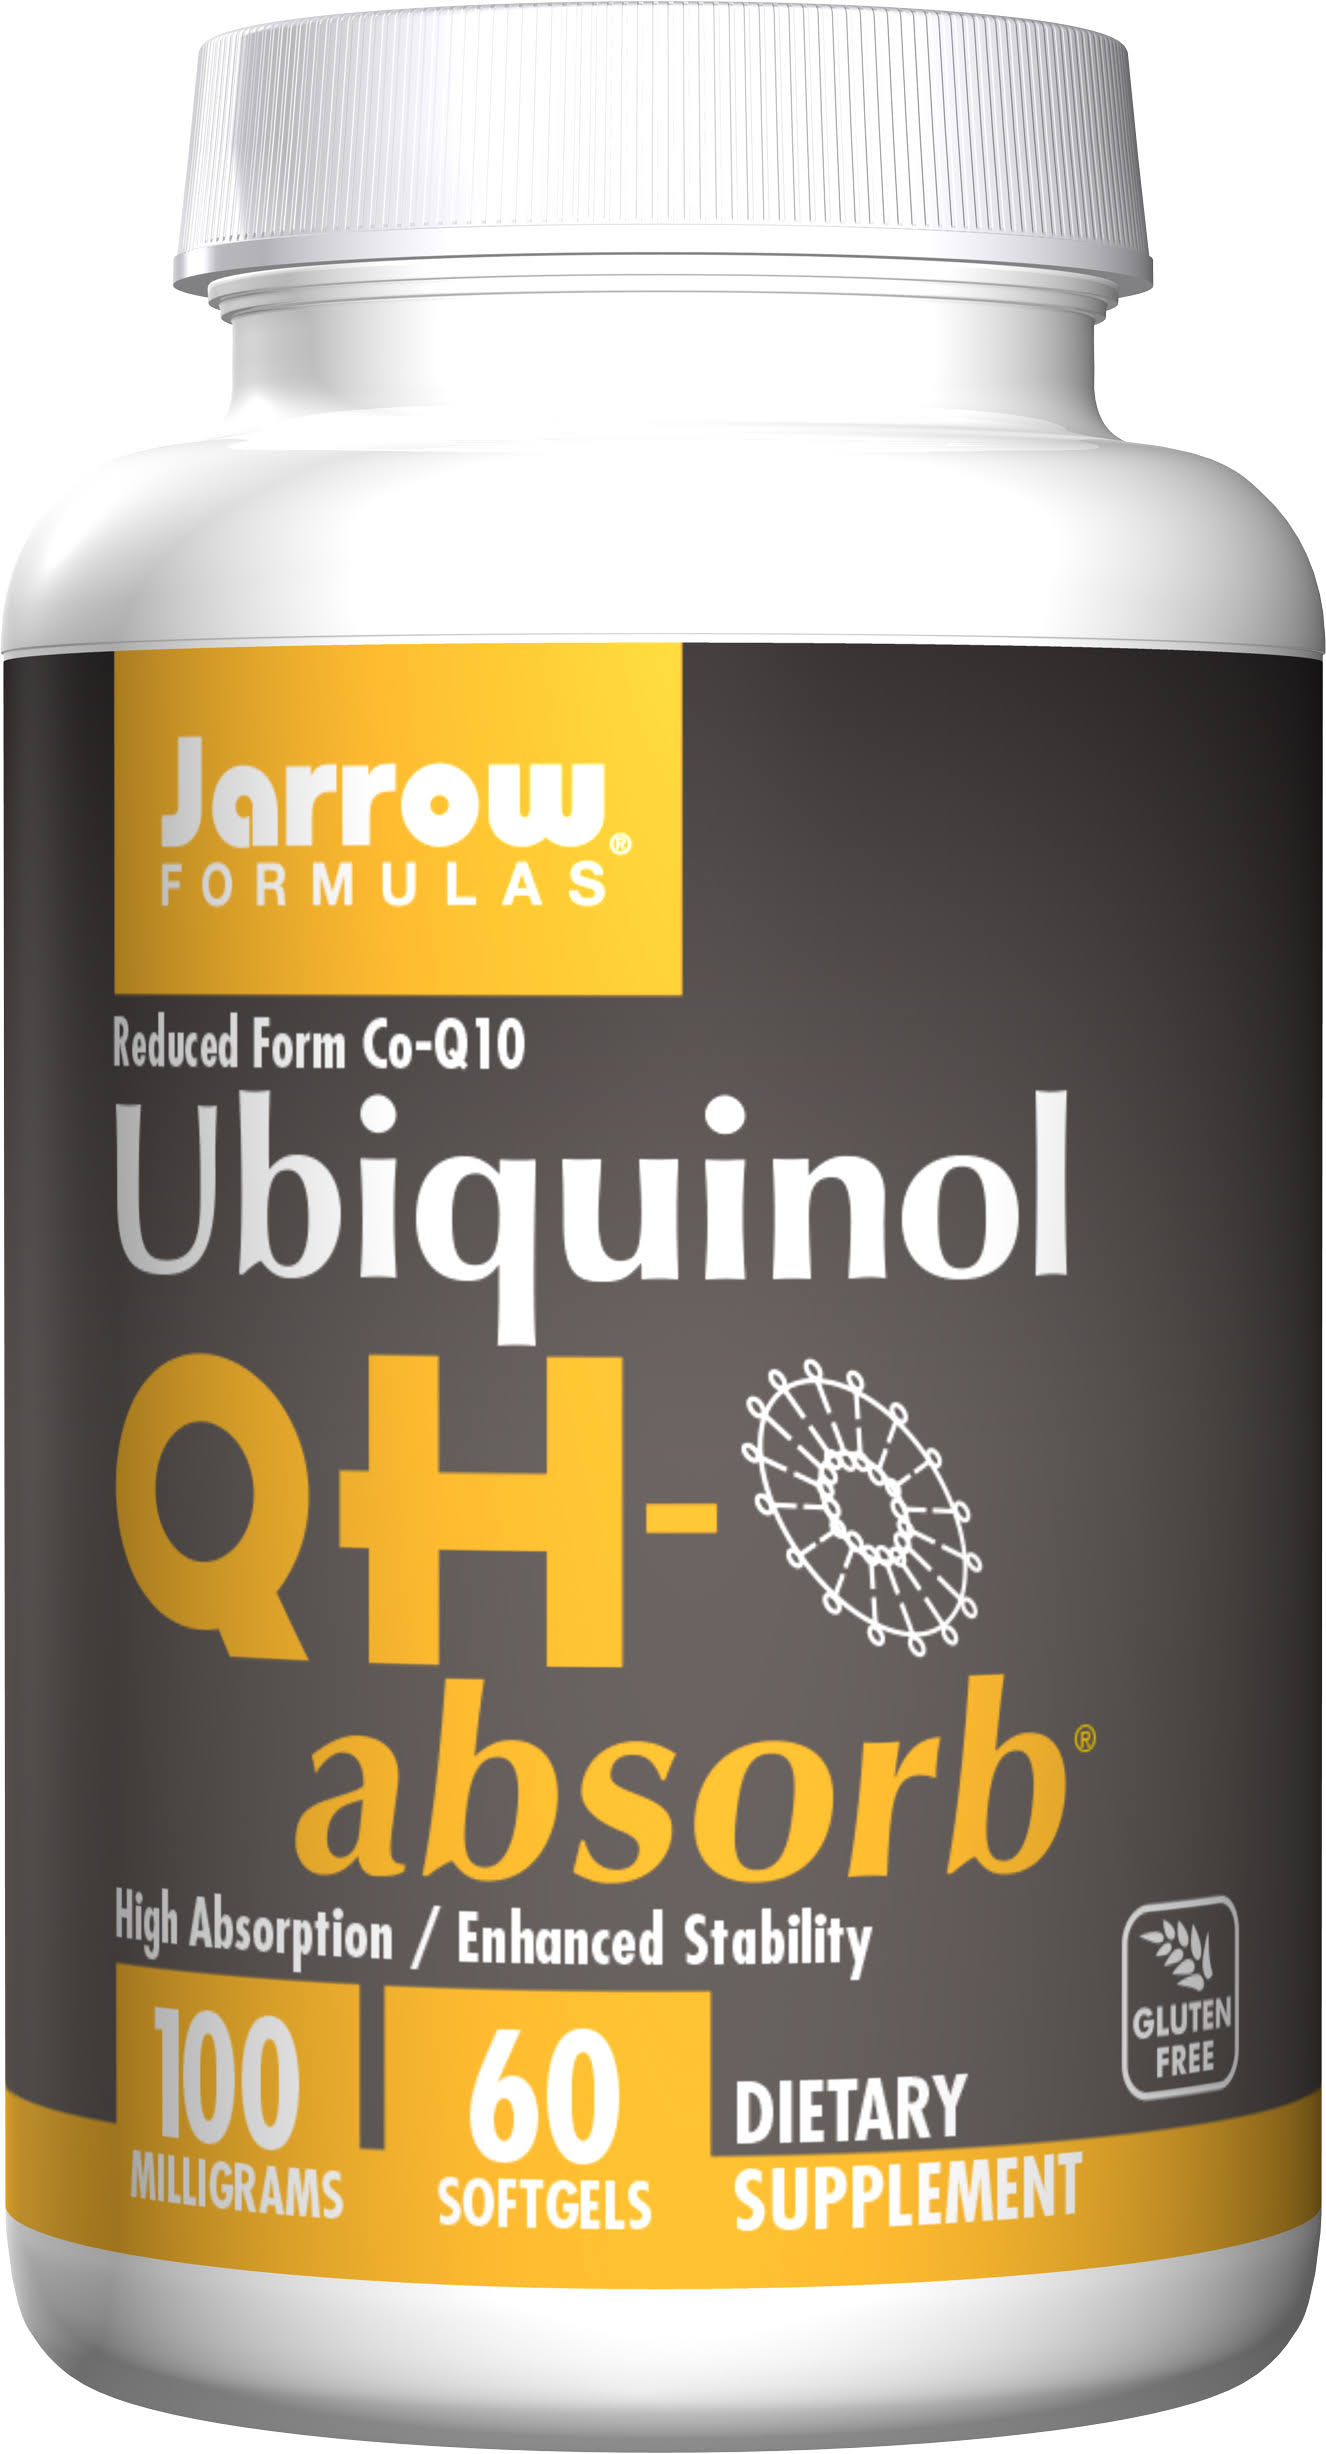 Jarrow Formulas Ubiquinol Qh Absorb - 100mg, 60 Softgels